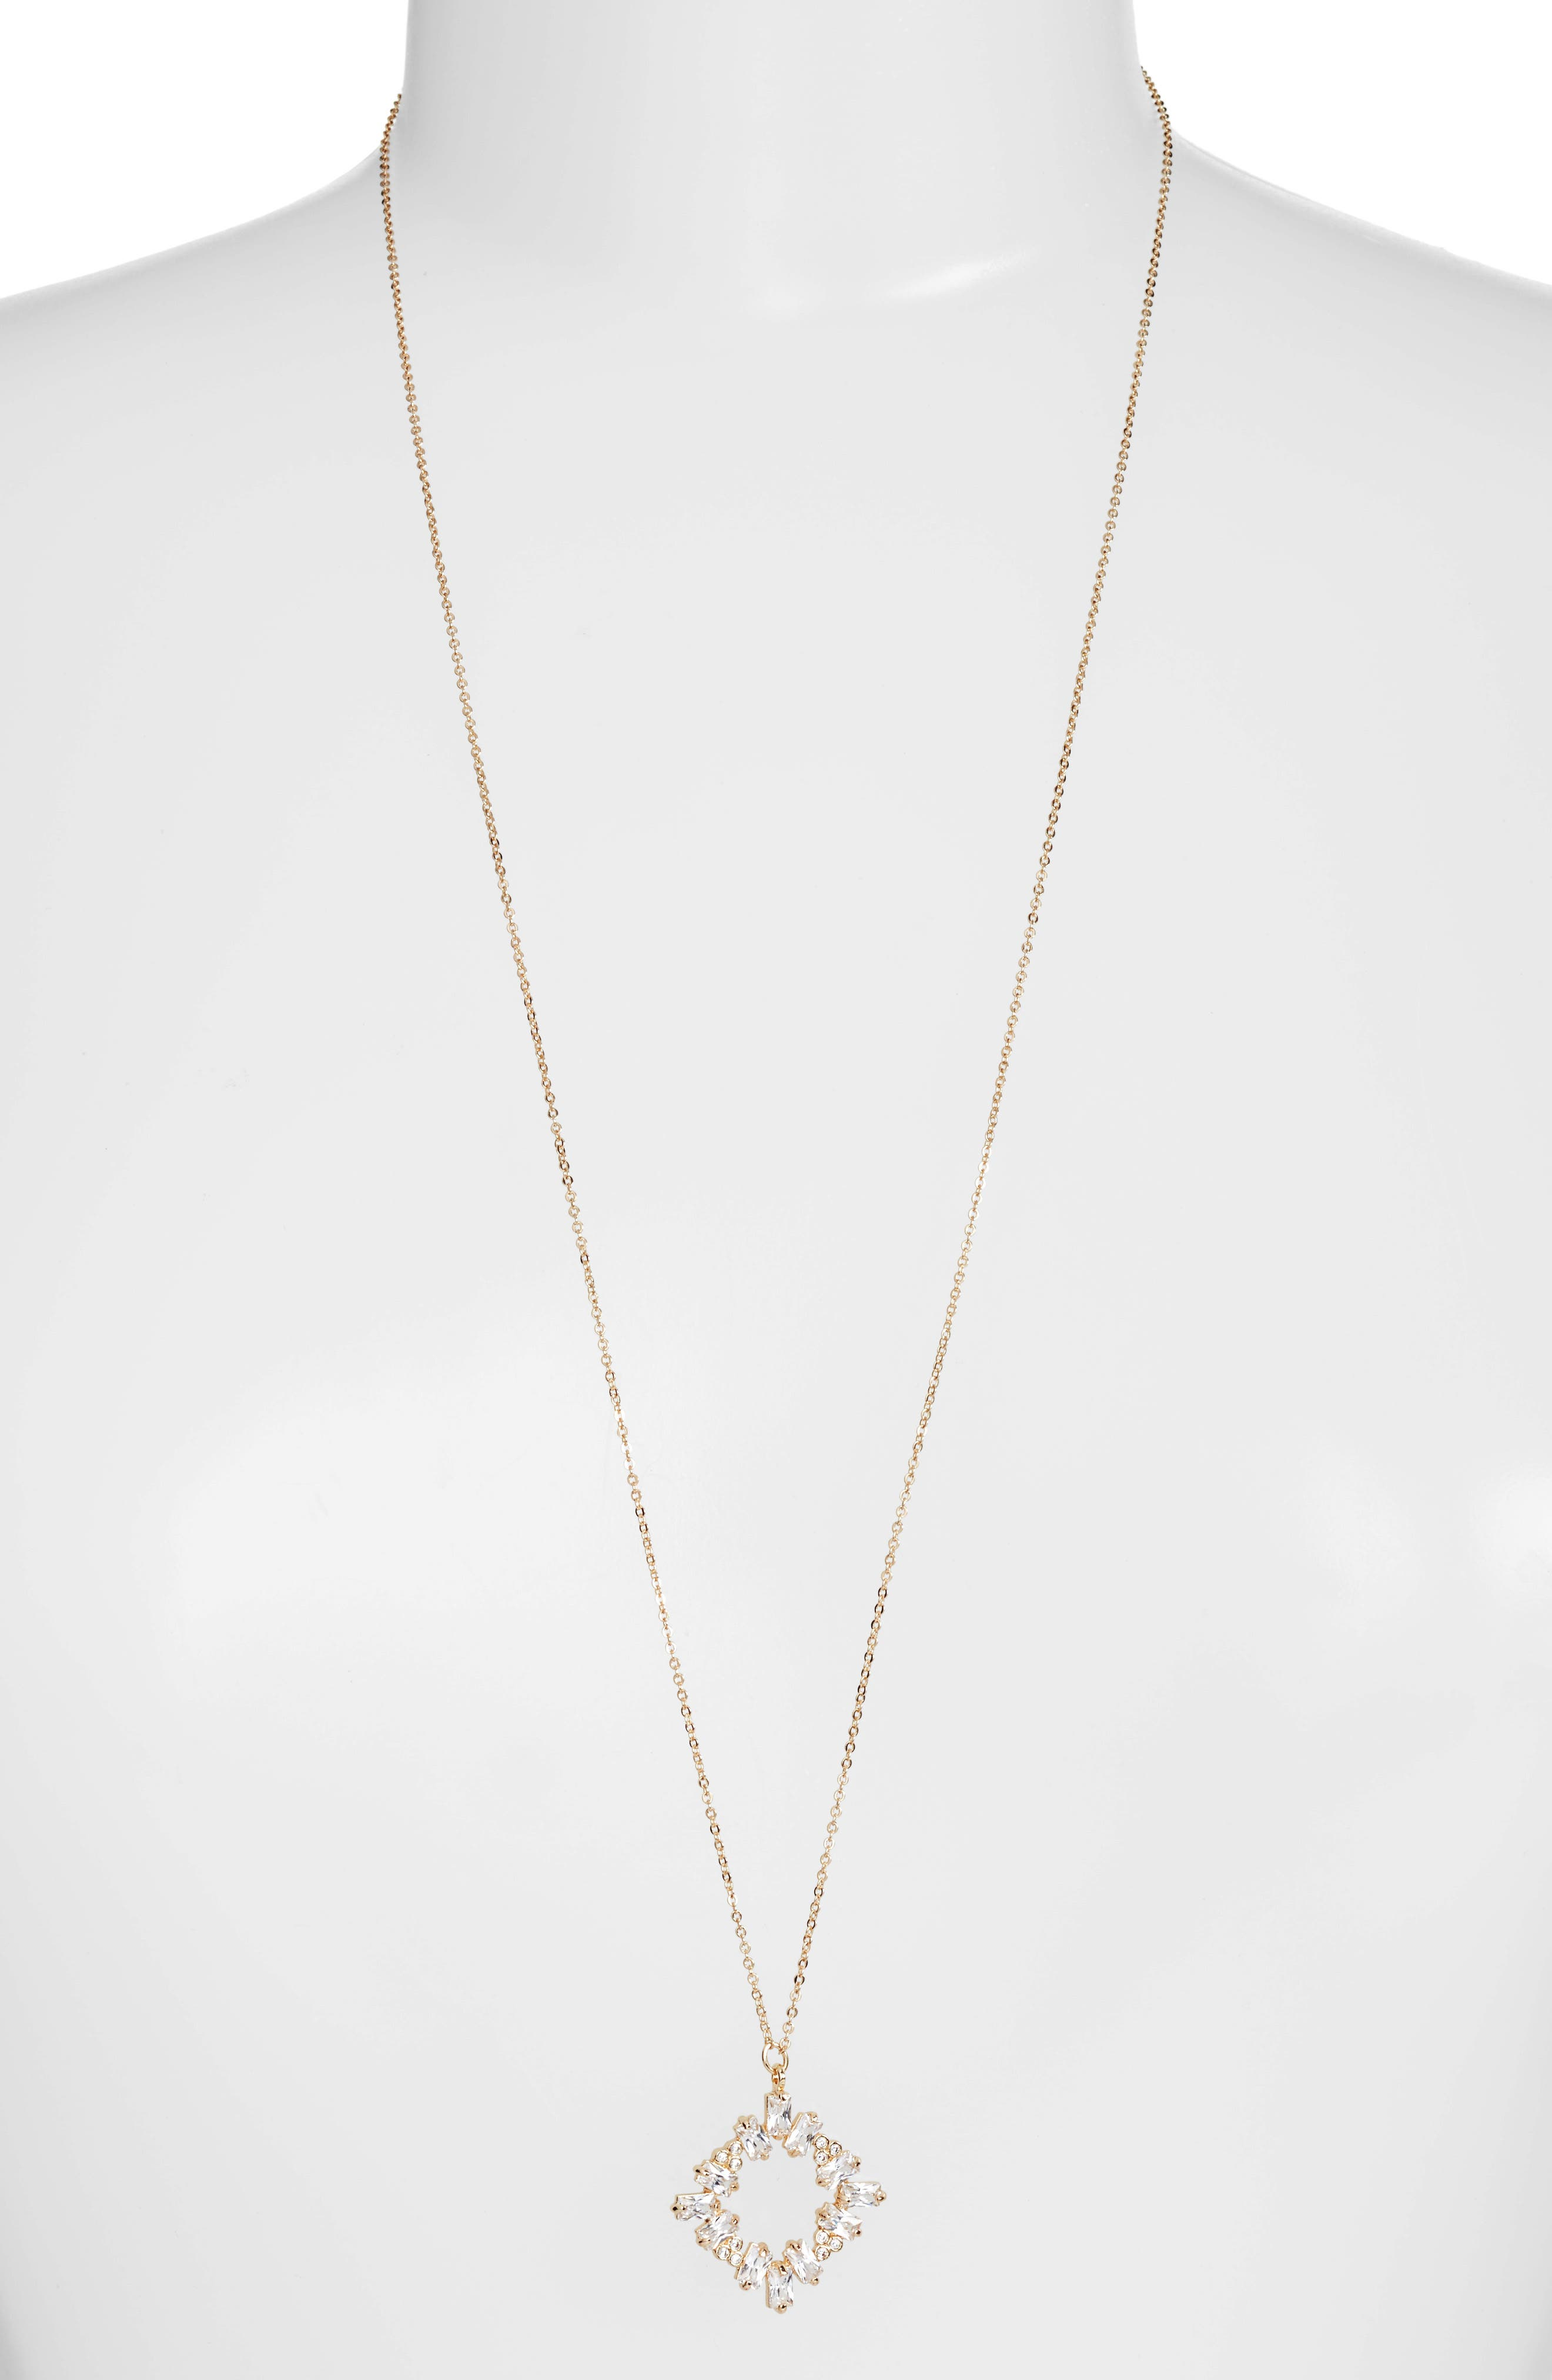 Main Image - CZ by Kenneth Jay Lane Pendant Necklace